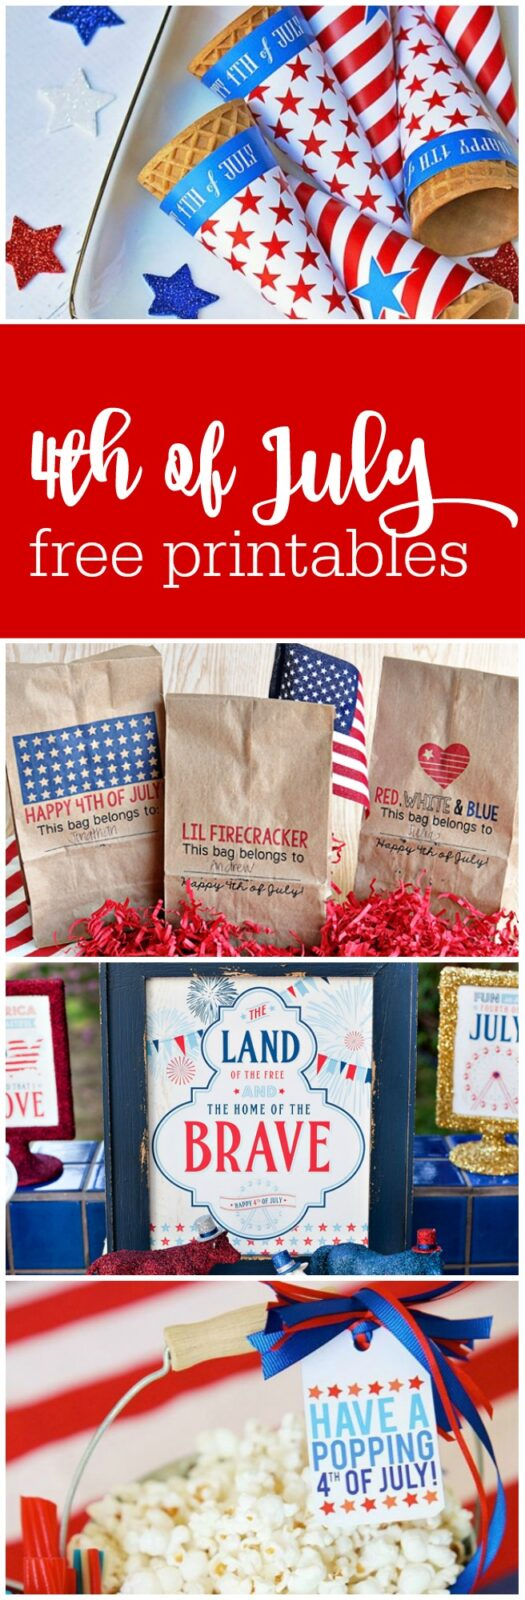 10 super cute free printables for 4th of July curated by The Party Teacher